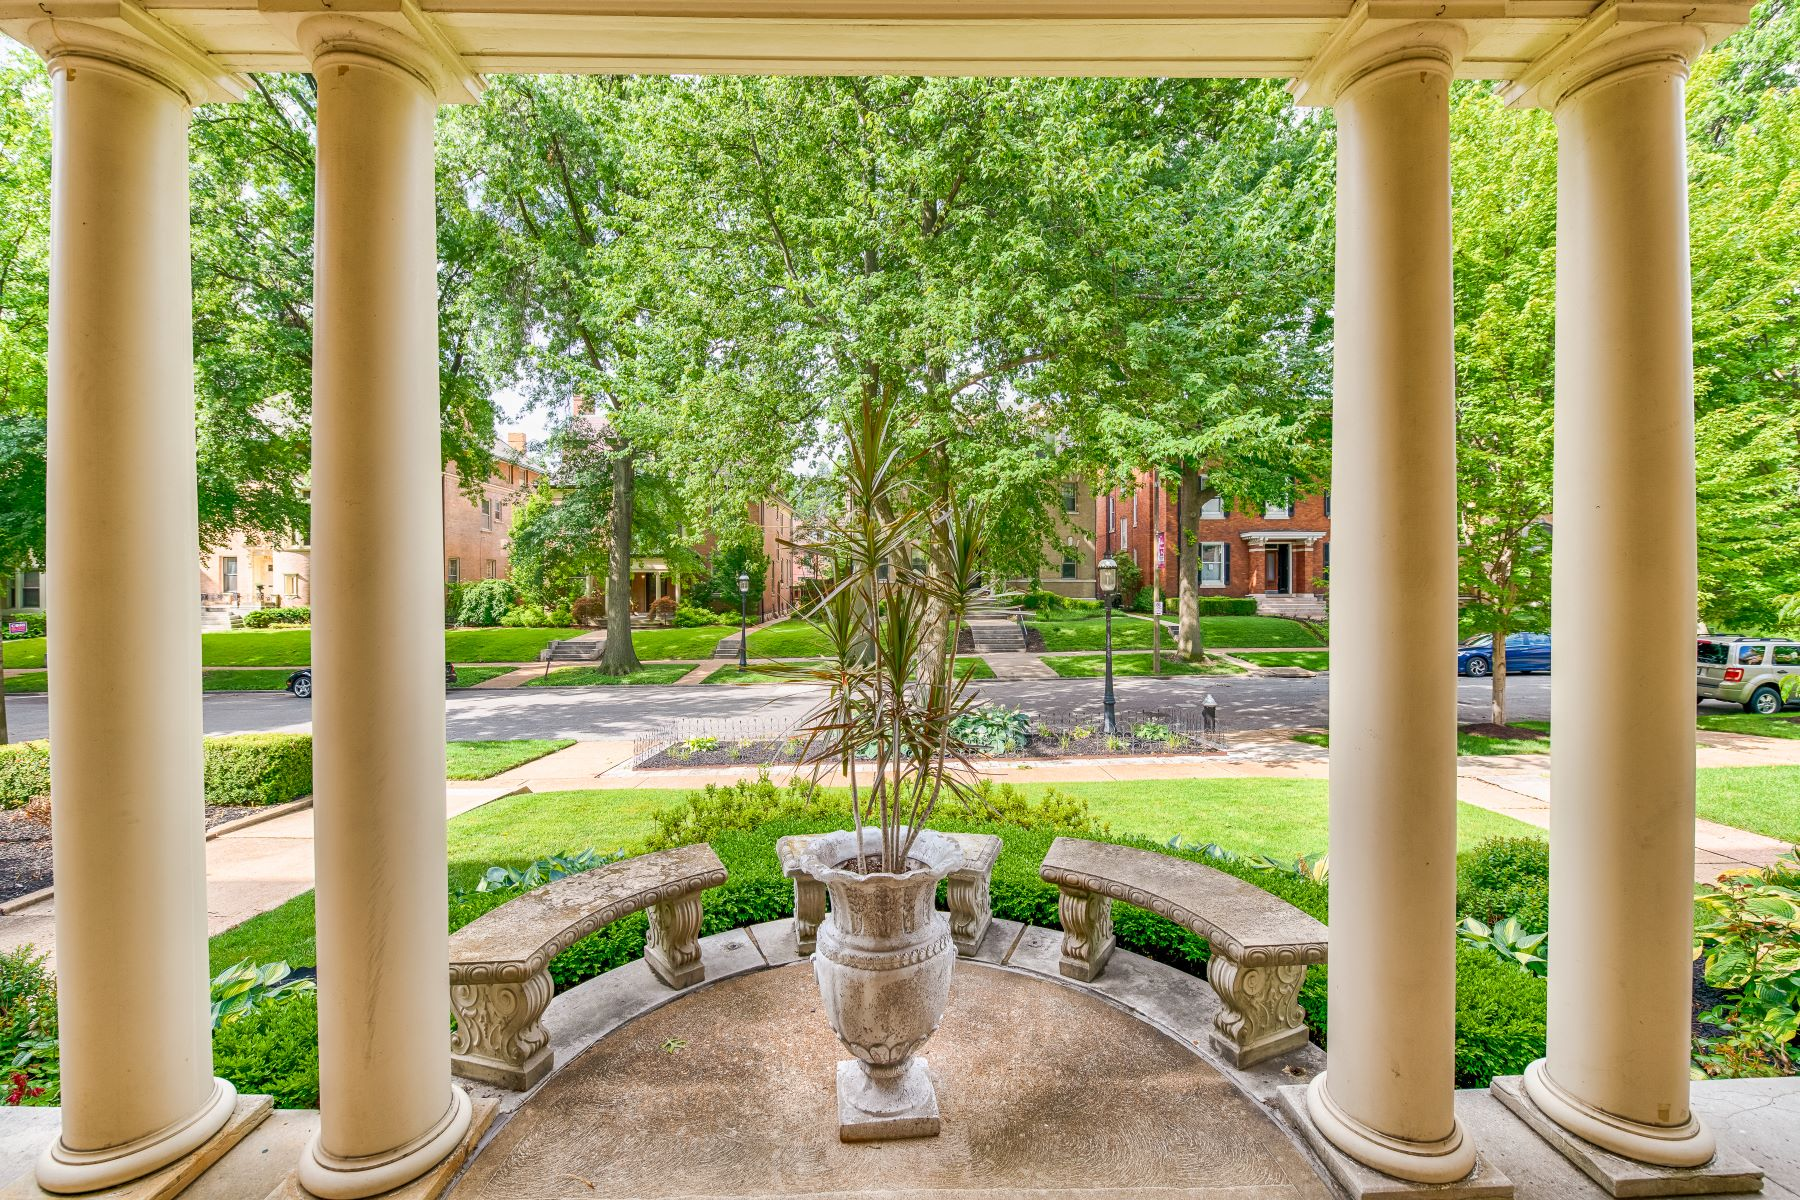 Property for Sale at 4441 Westminster Place St. Louis, Missouri 63108 United States